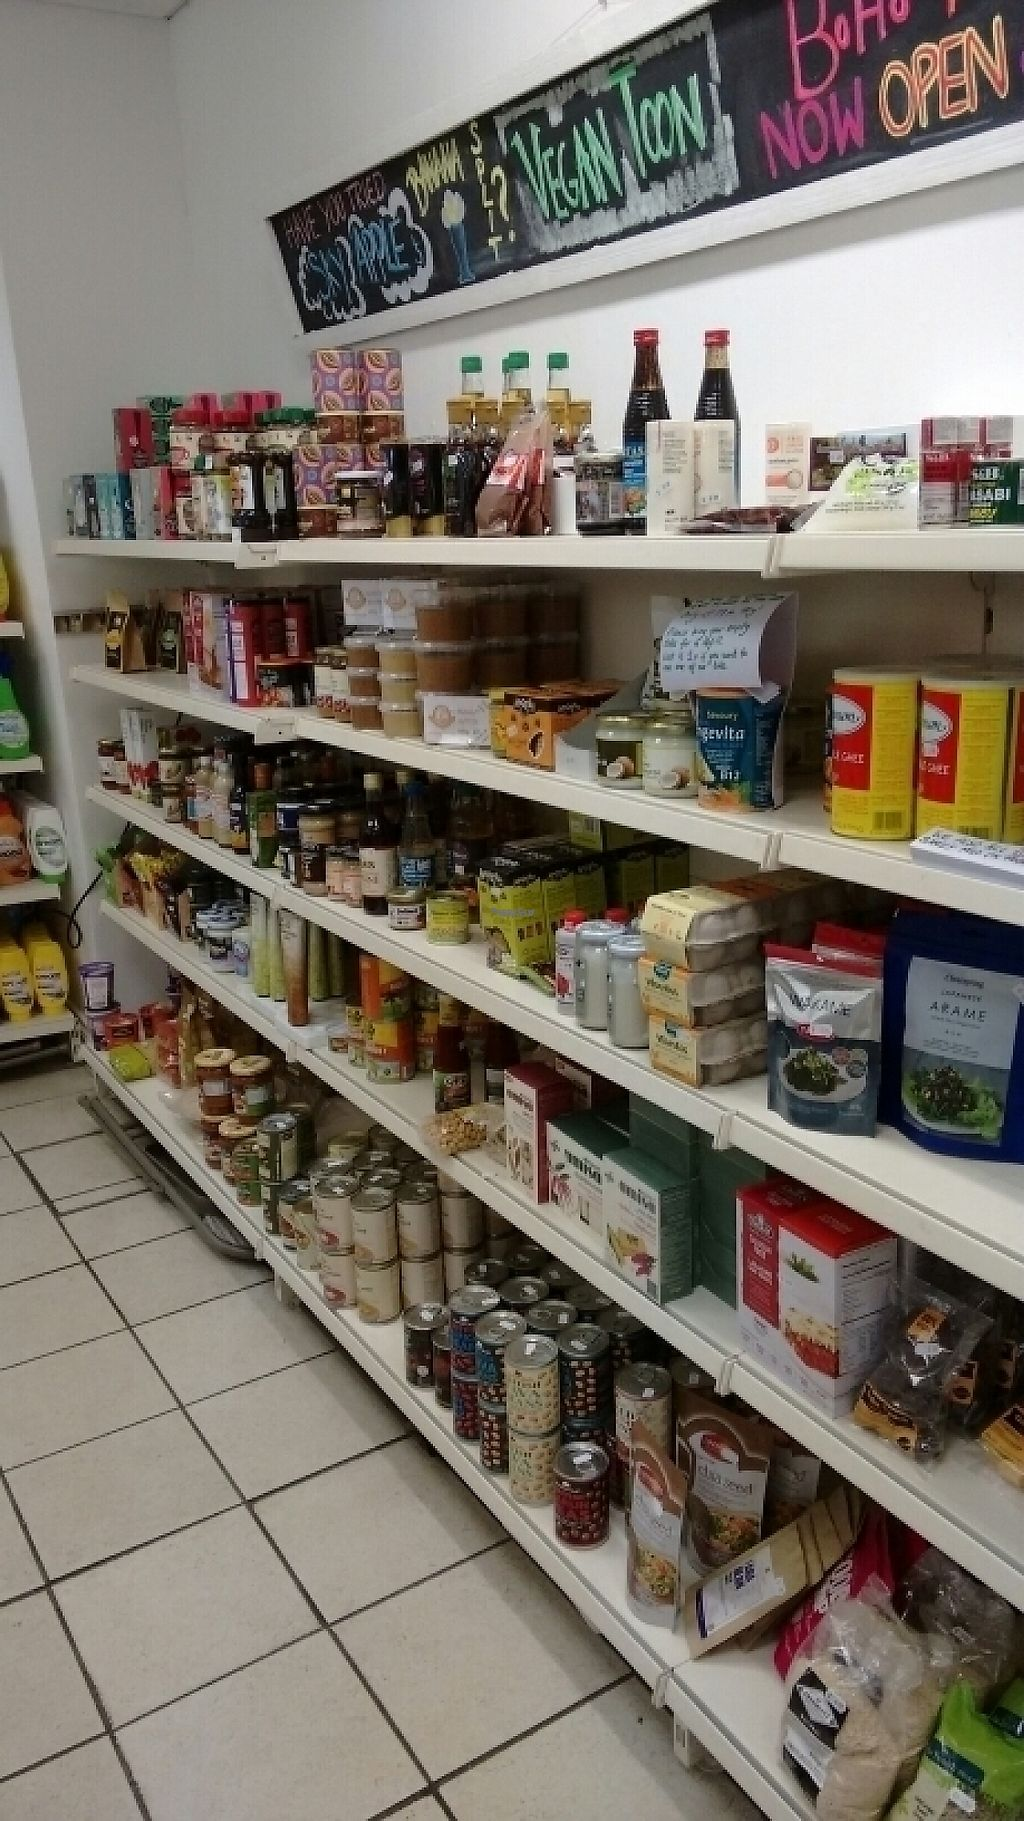 """Photo of Farplace Vegan Store  by <a href=""""/members/profile/craigmc"""">craigmc</a> <br/>plenty of Goodie's <br/> December 9, 2016  - <a href='/contact/abuse/image/62070/198486'>Report</a>"""